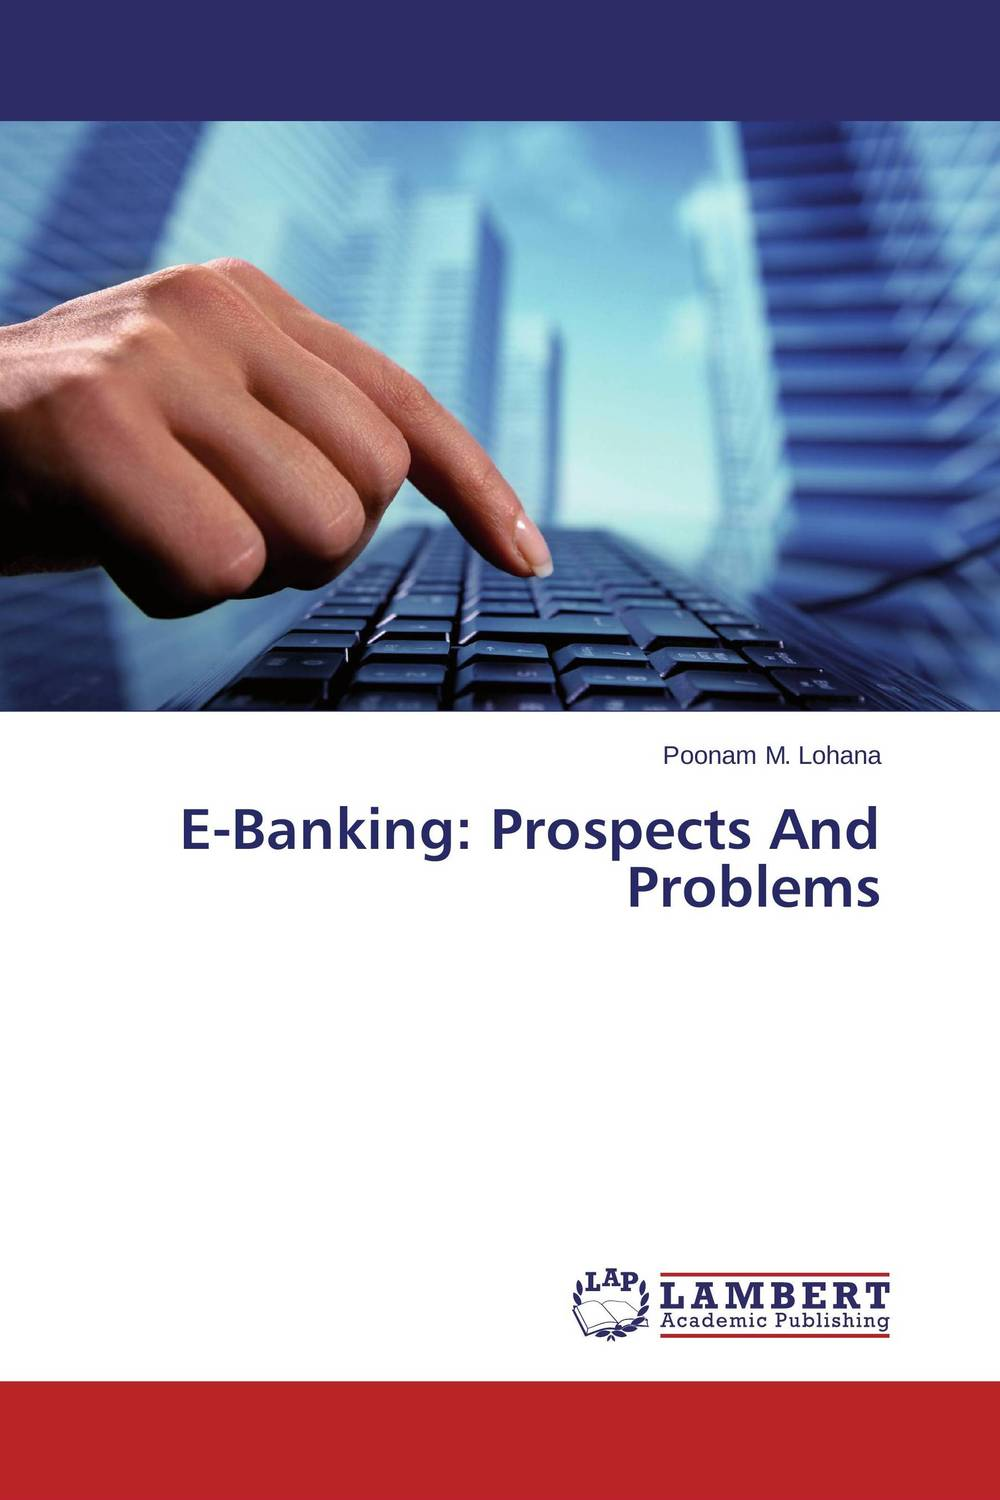 E-Banking: Prospects And Problems